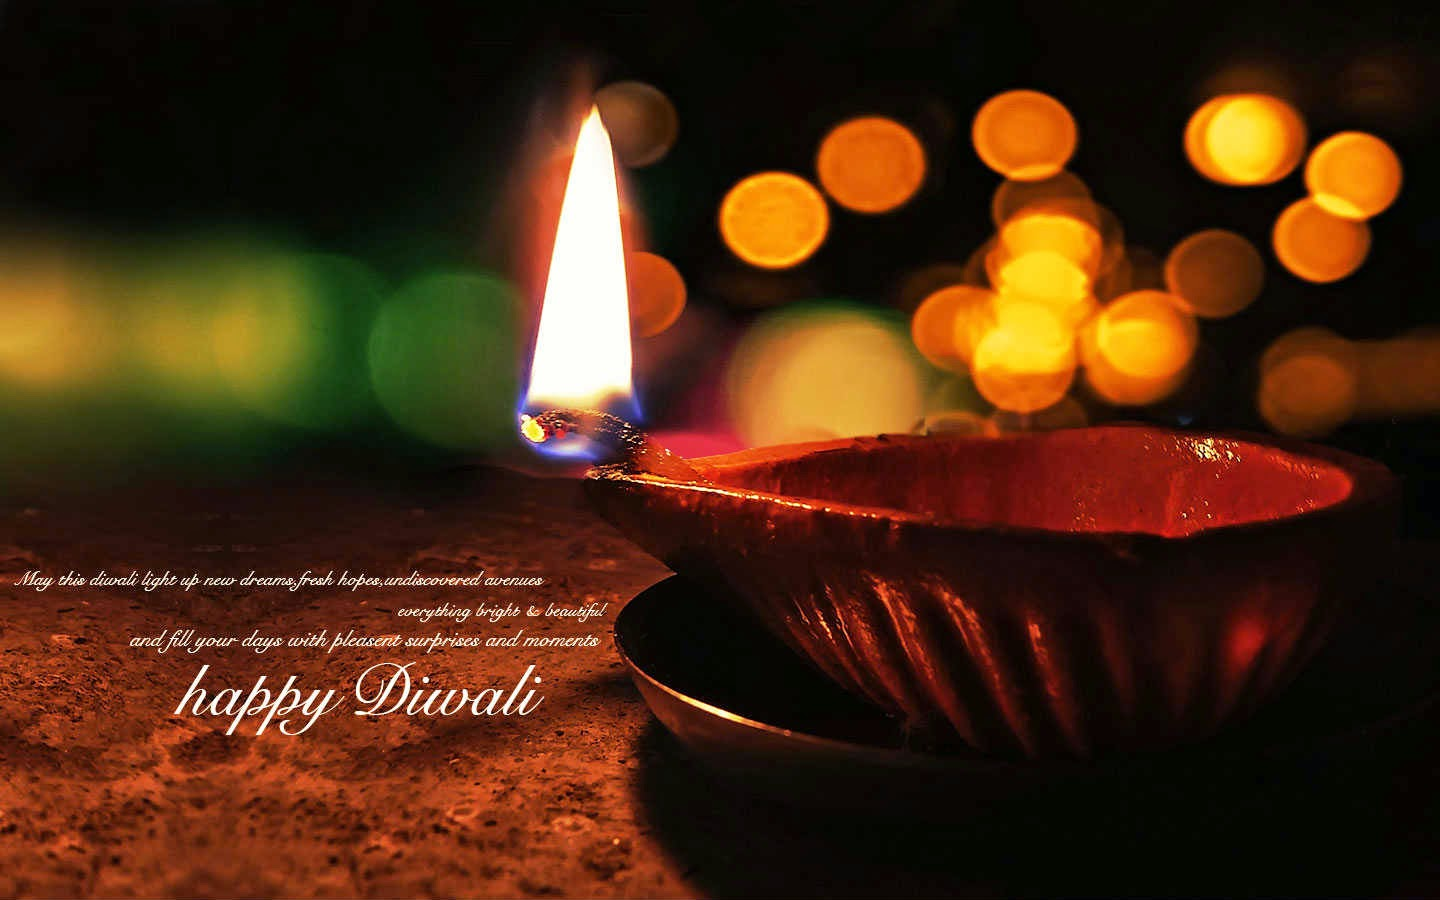 Happy diwali widescreen hd wallpaper hd wallpapers - Hd wallpaper happy diwali ...